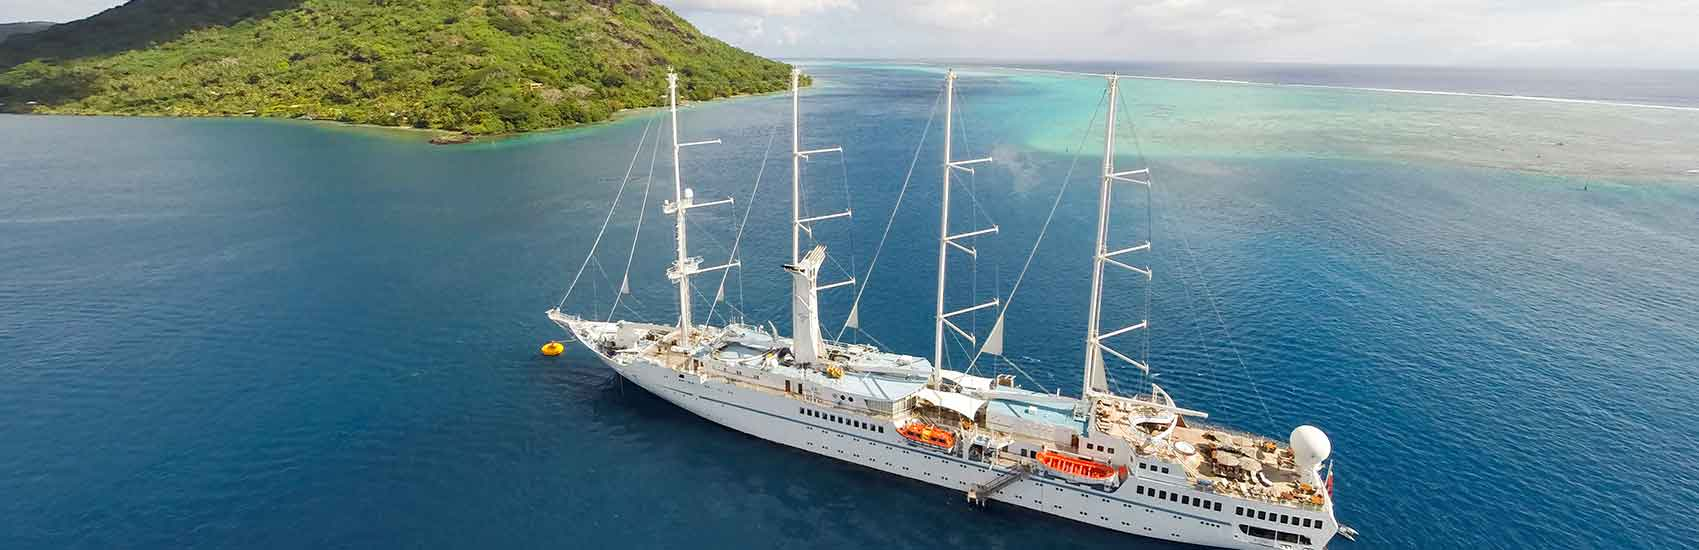 Exclusive Virtuoso Offer with Windstar Cruises 2